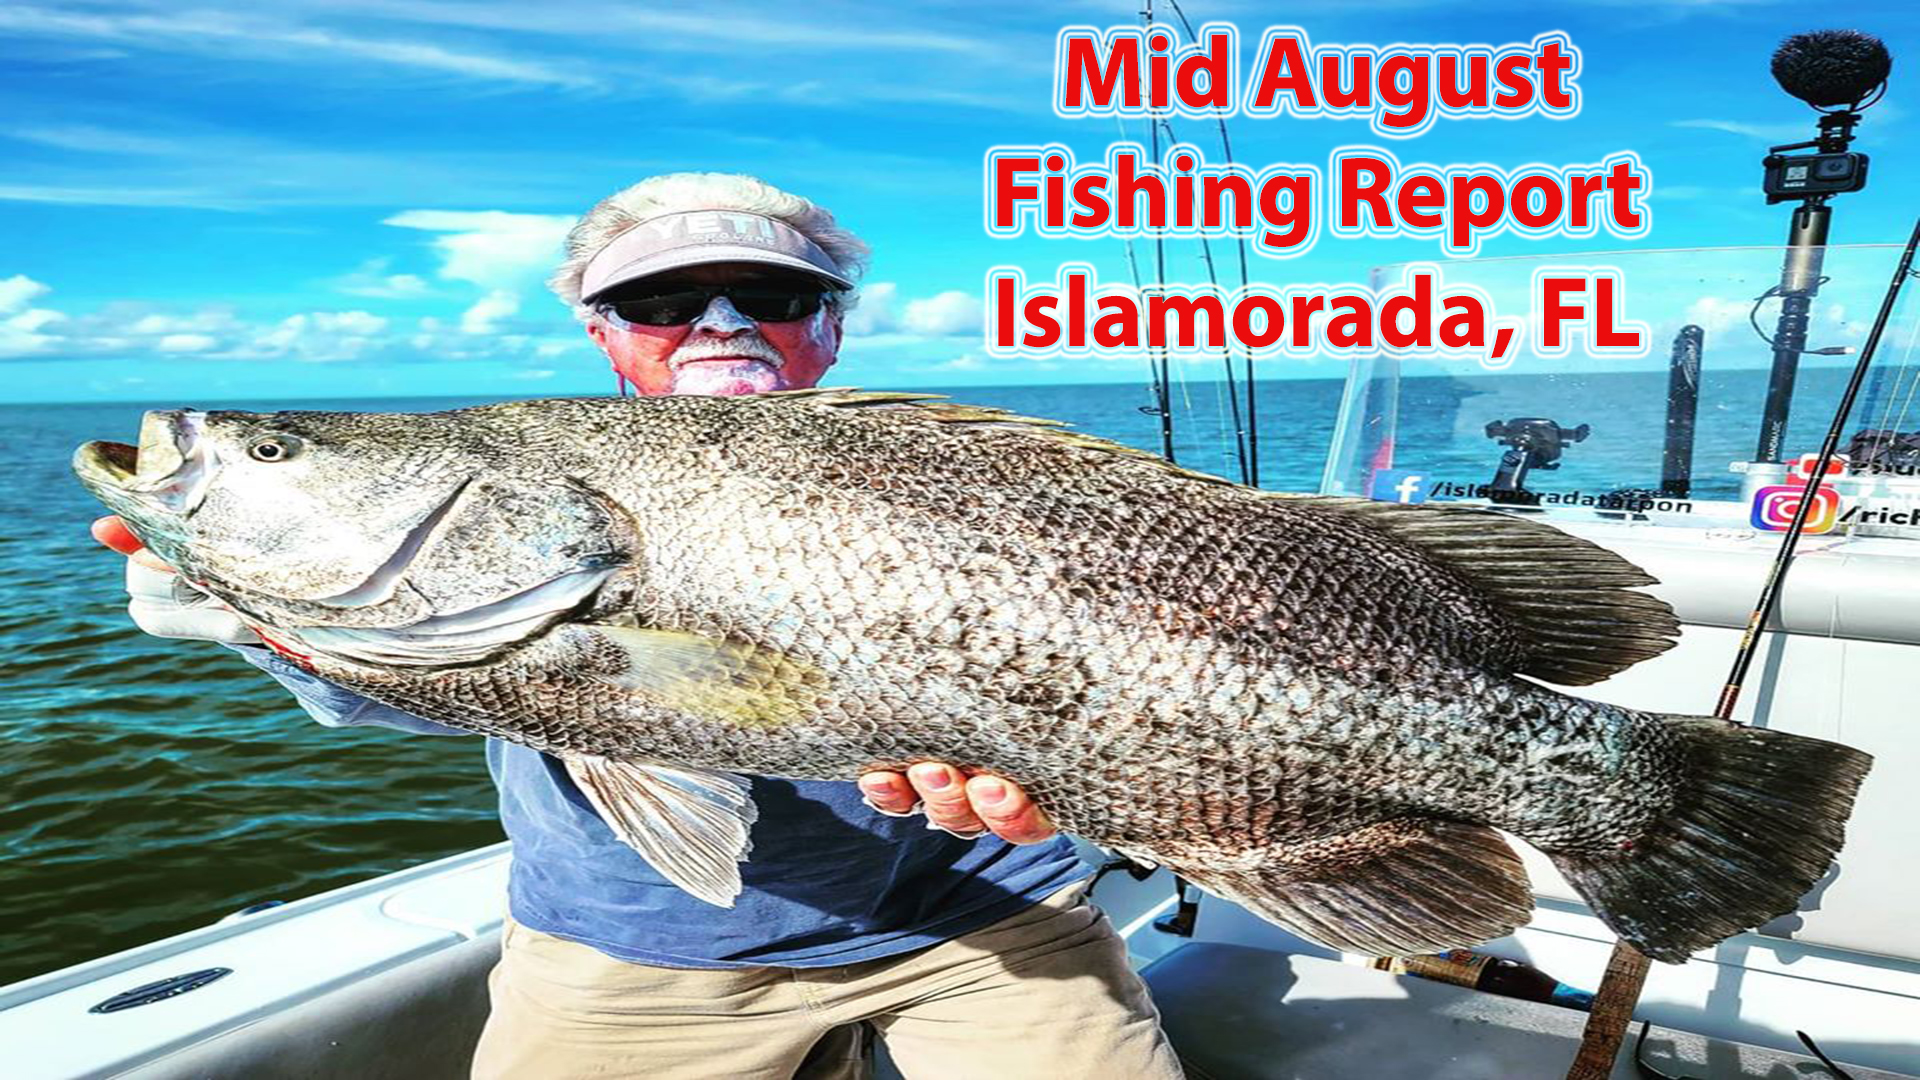 Mid August Fishing Report